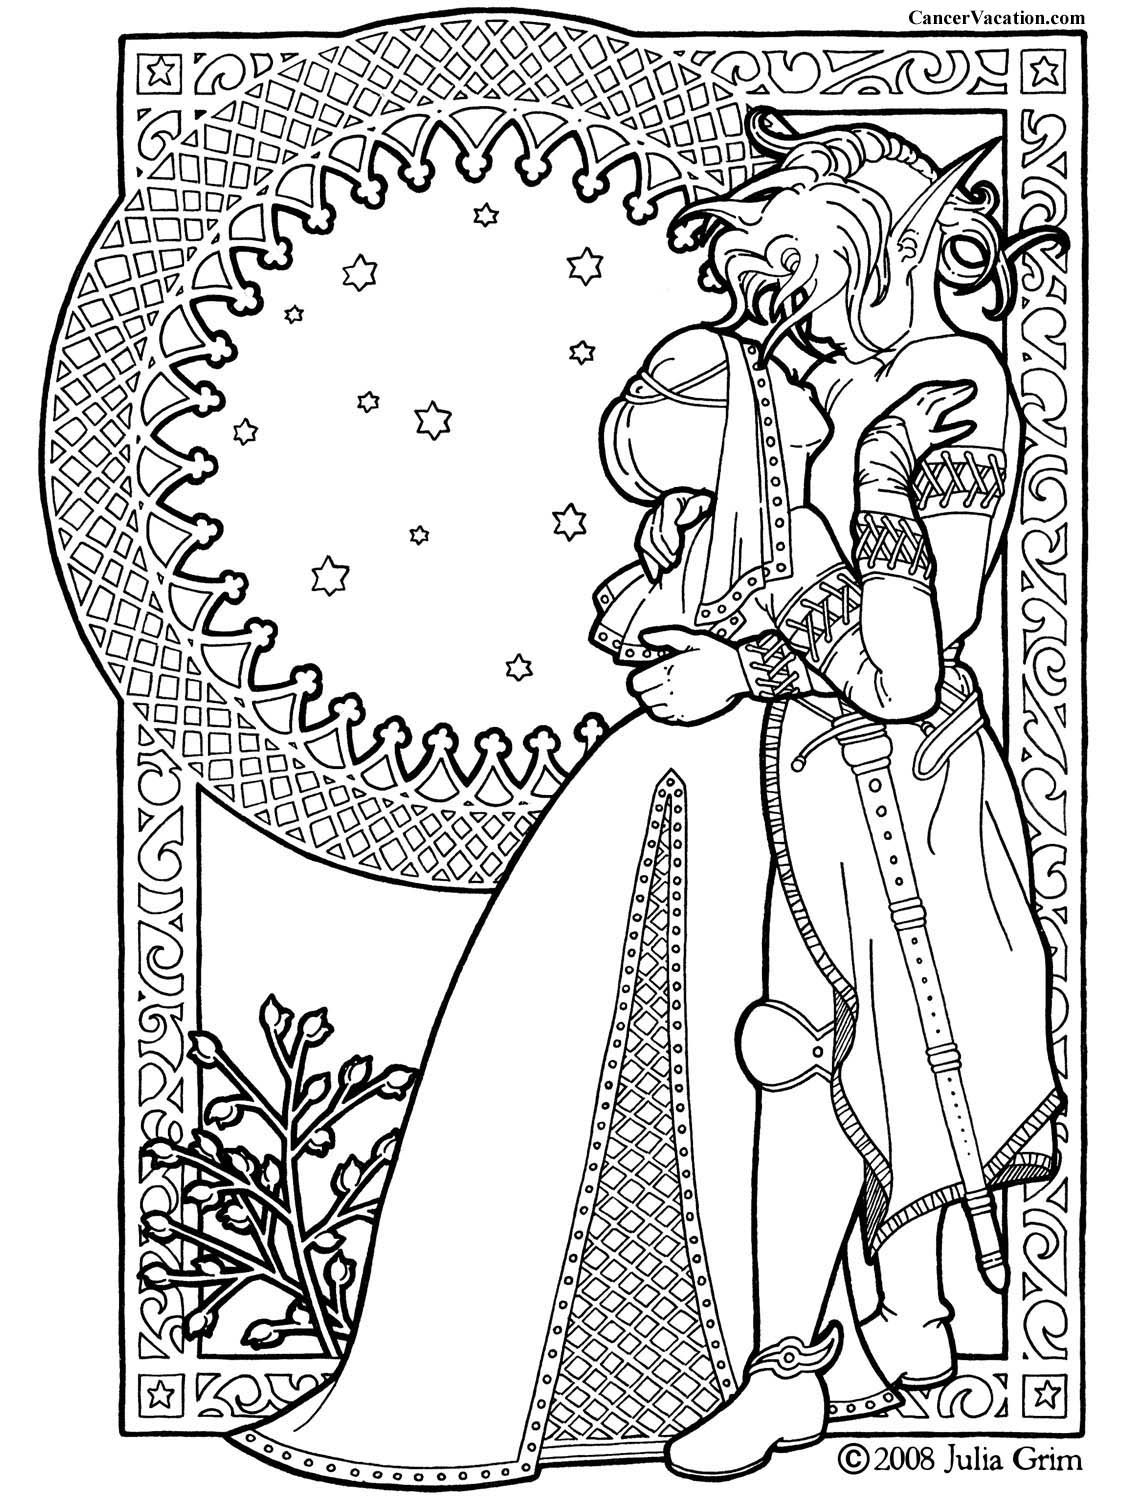 adult fantasy coloring book cancer vacation free coloring book pages from the starving artist